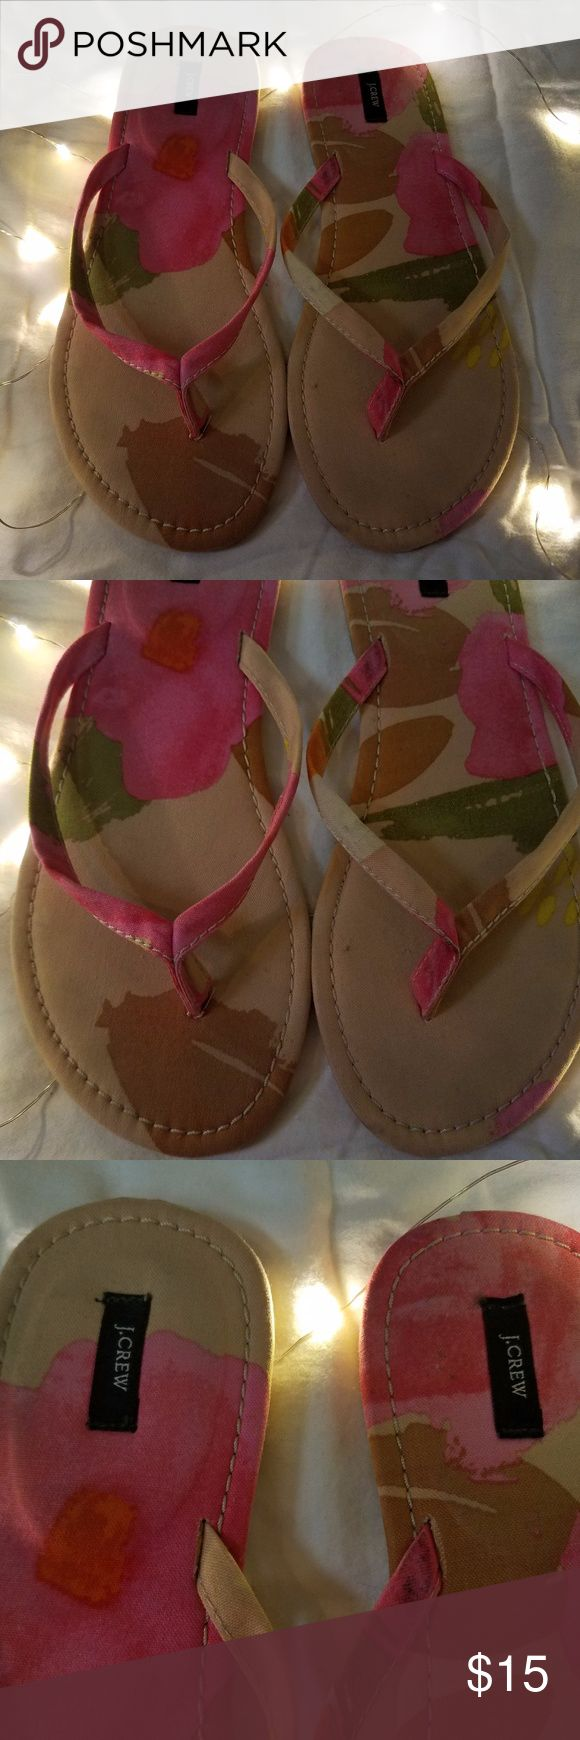 """J.CREW Floral Flip Flops Thong Sandals 0 EUC J.CREW Floral Flip Flops Thong Sandals Women Brown Pink 9 Excellent Used Condition   Beautiful light-weight  flip flops/thong sandals  Materials: Fabric Upper, Rubber Sole  Measurements:  Length: 10"""" in Width: 3.5"""" in  Thank you for looking!  S-S01 J.Crew Shoes Slippers"""